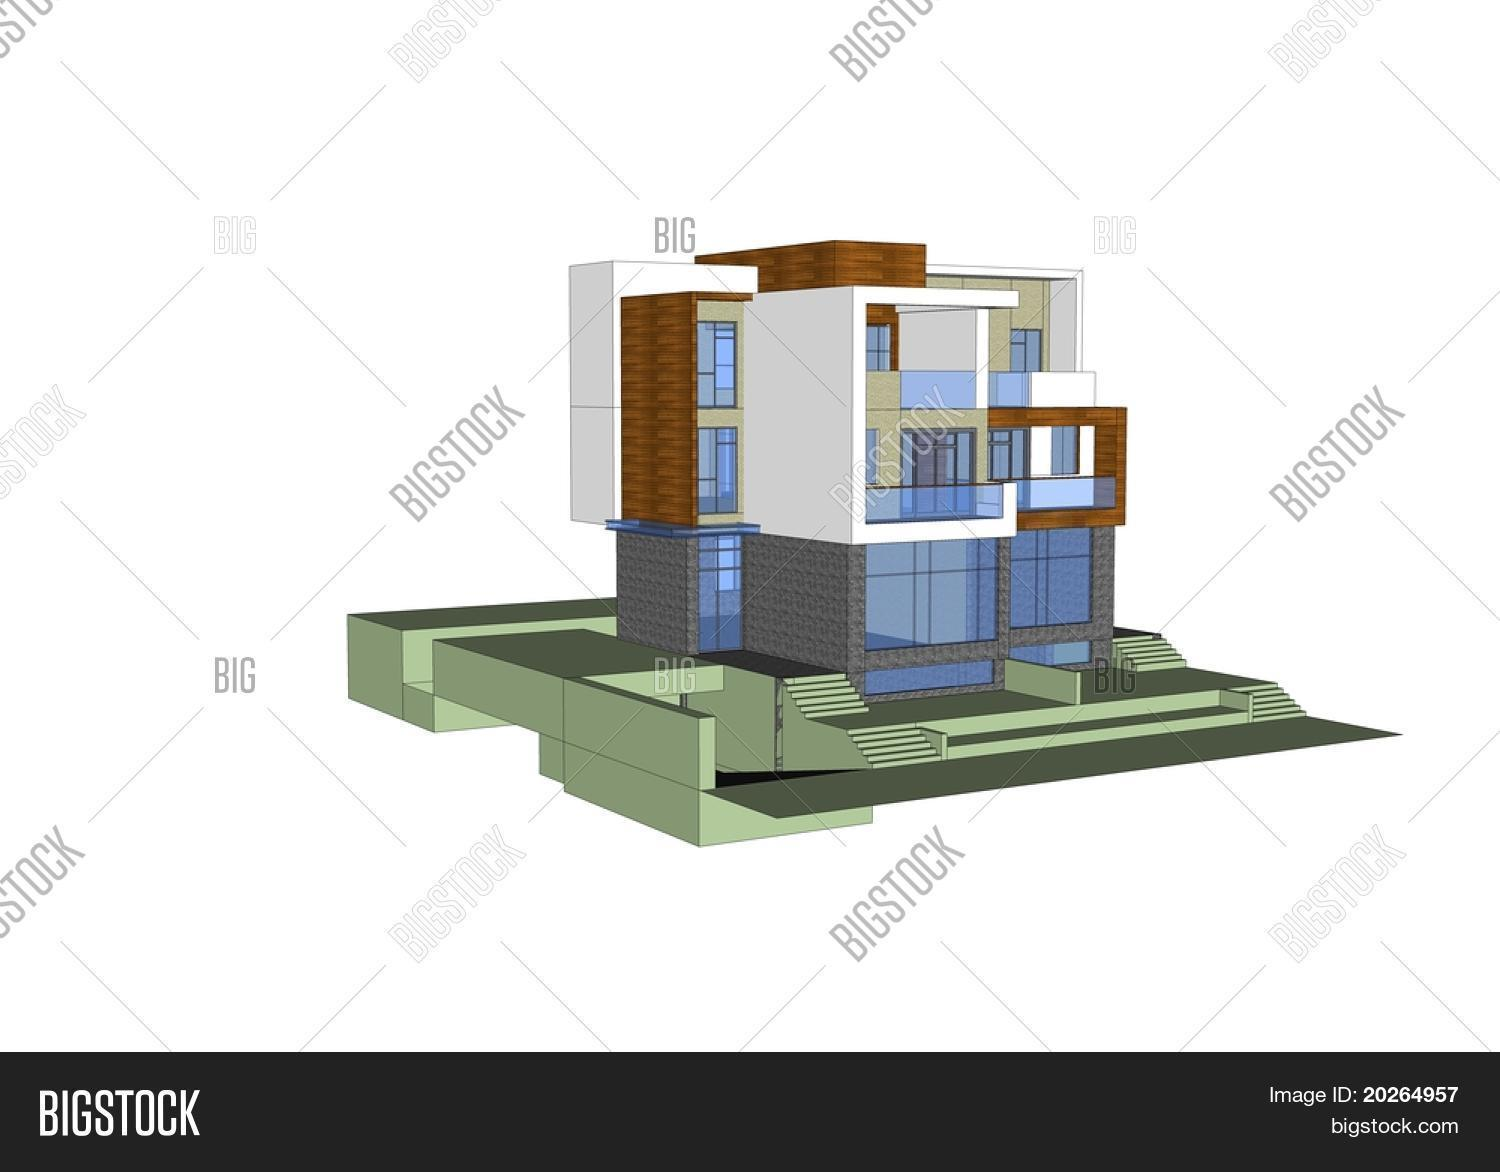 3d Model House Image & Photo (Free Trial) | Bigstock